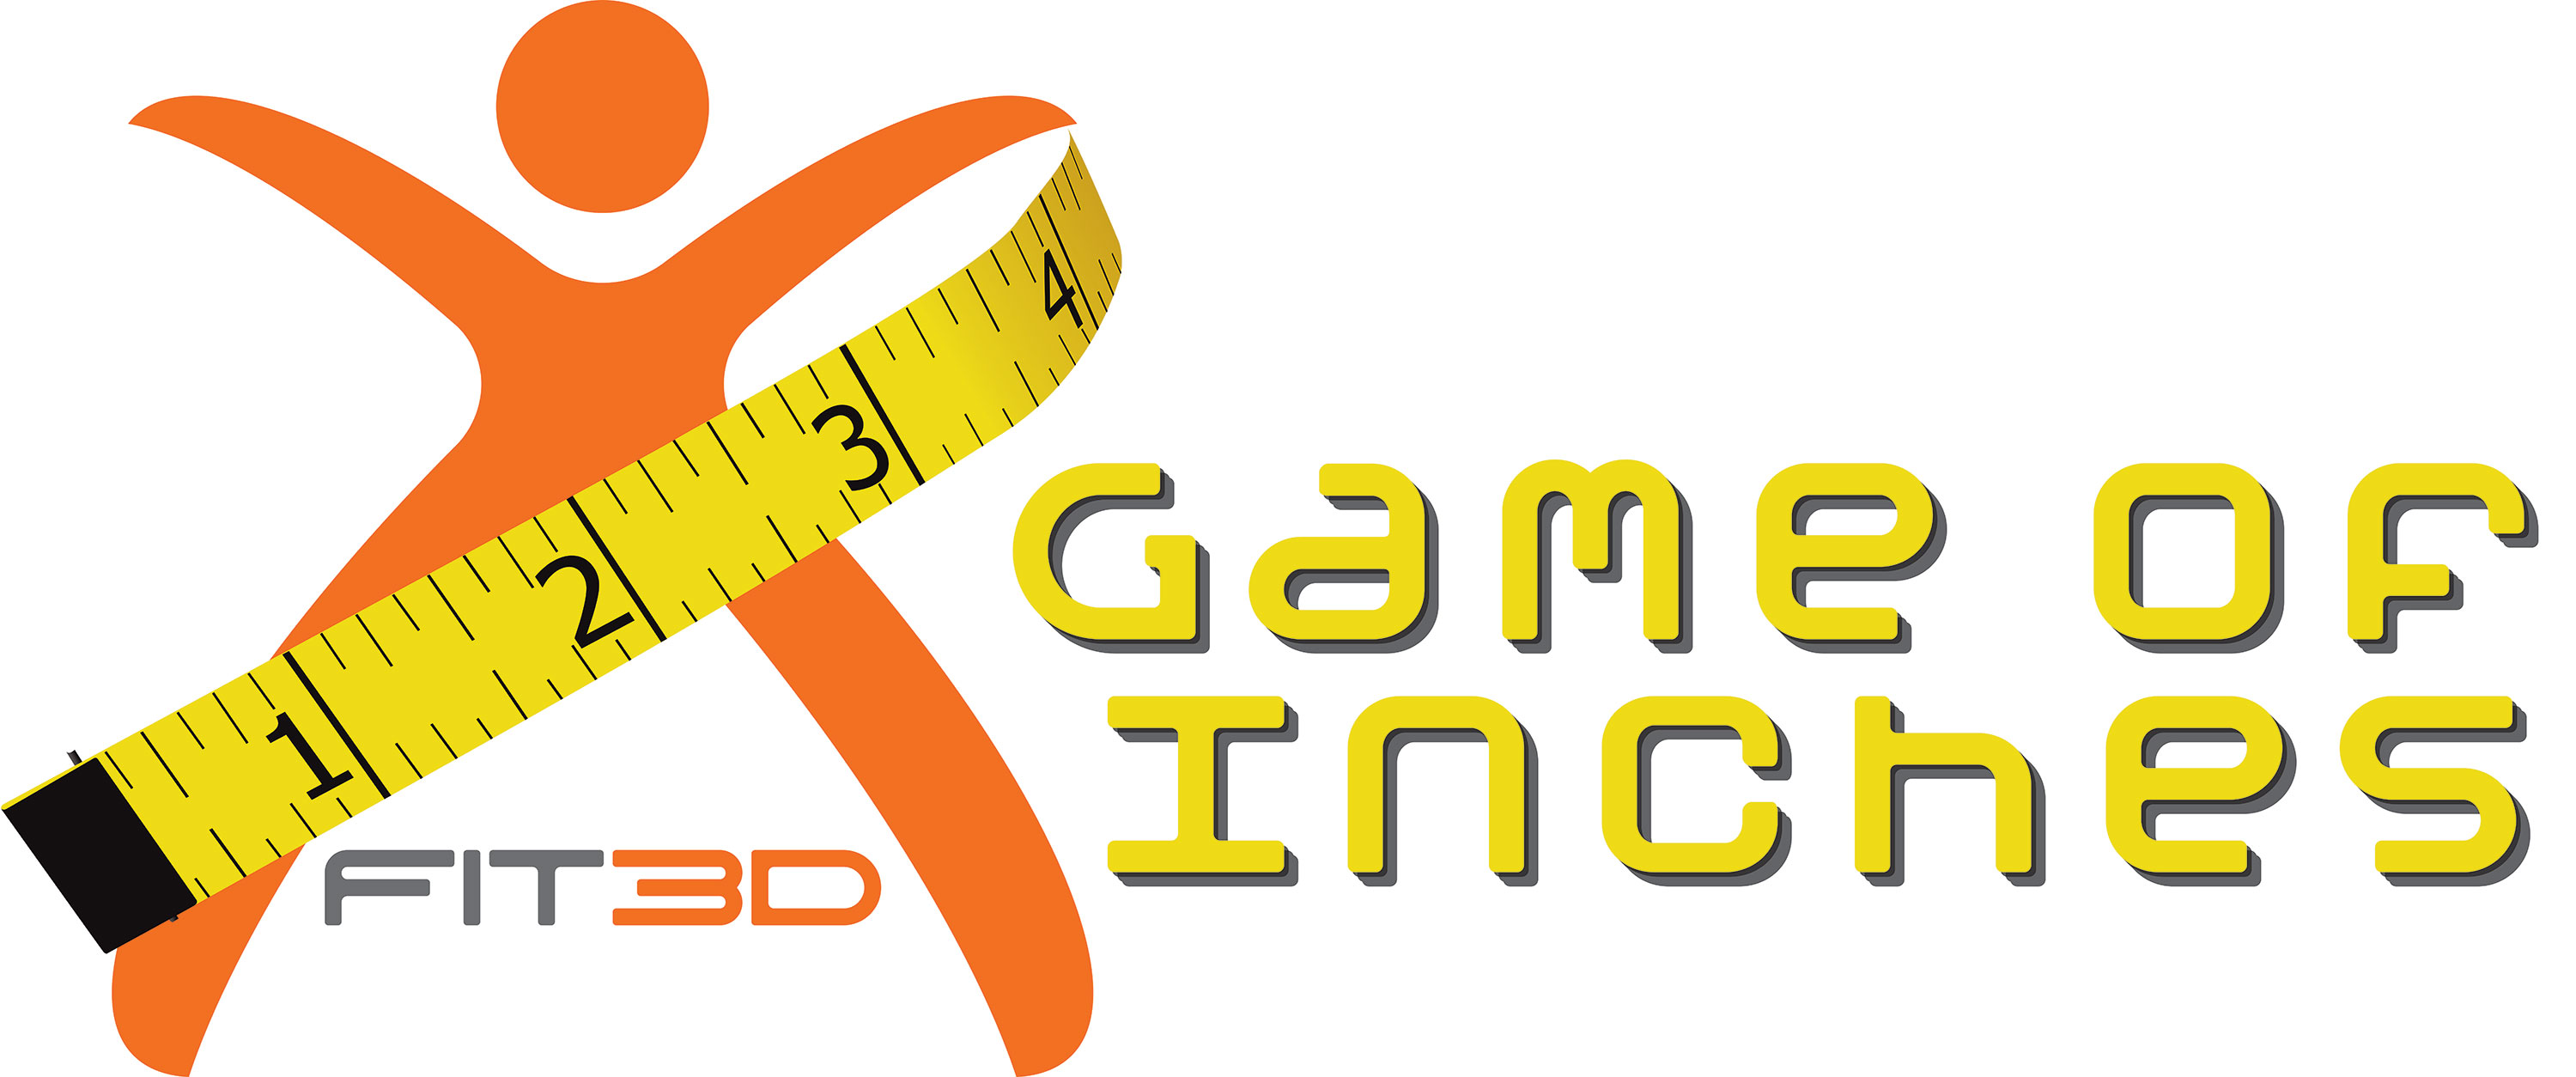 Game-of-inches-logo.jpg